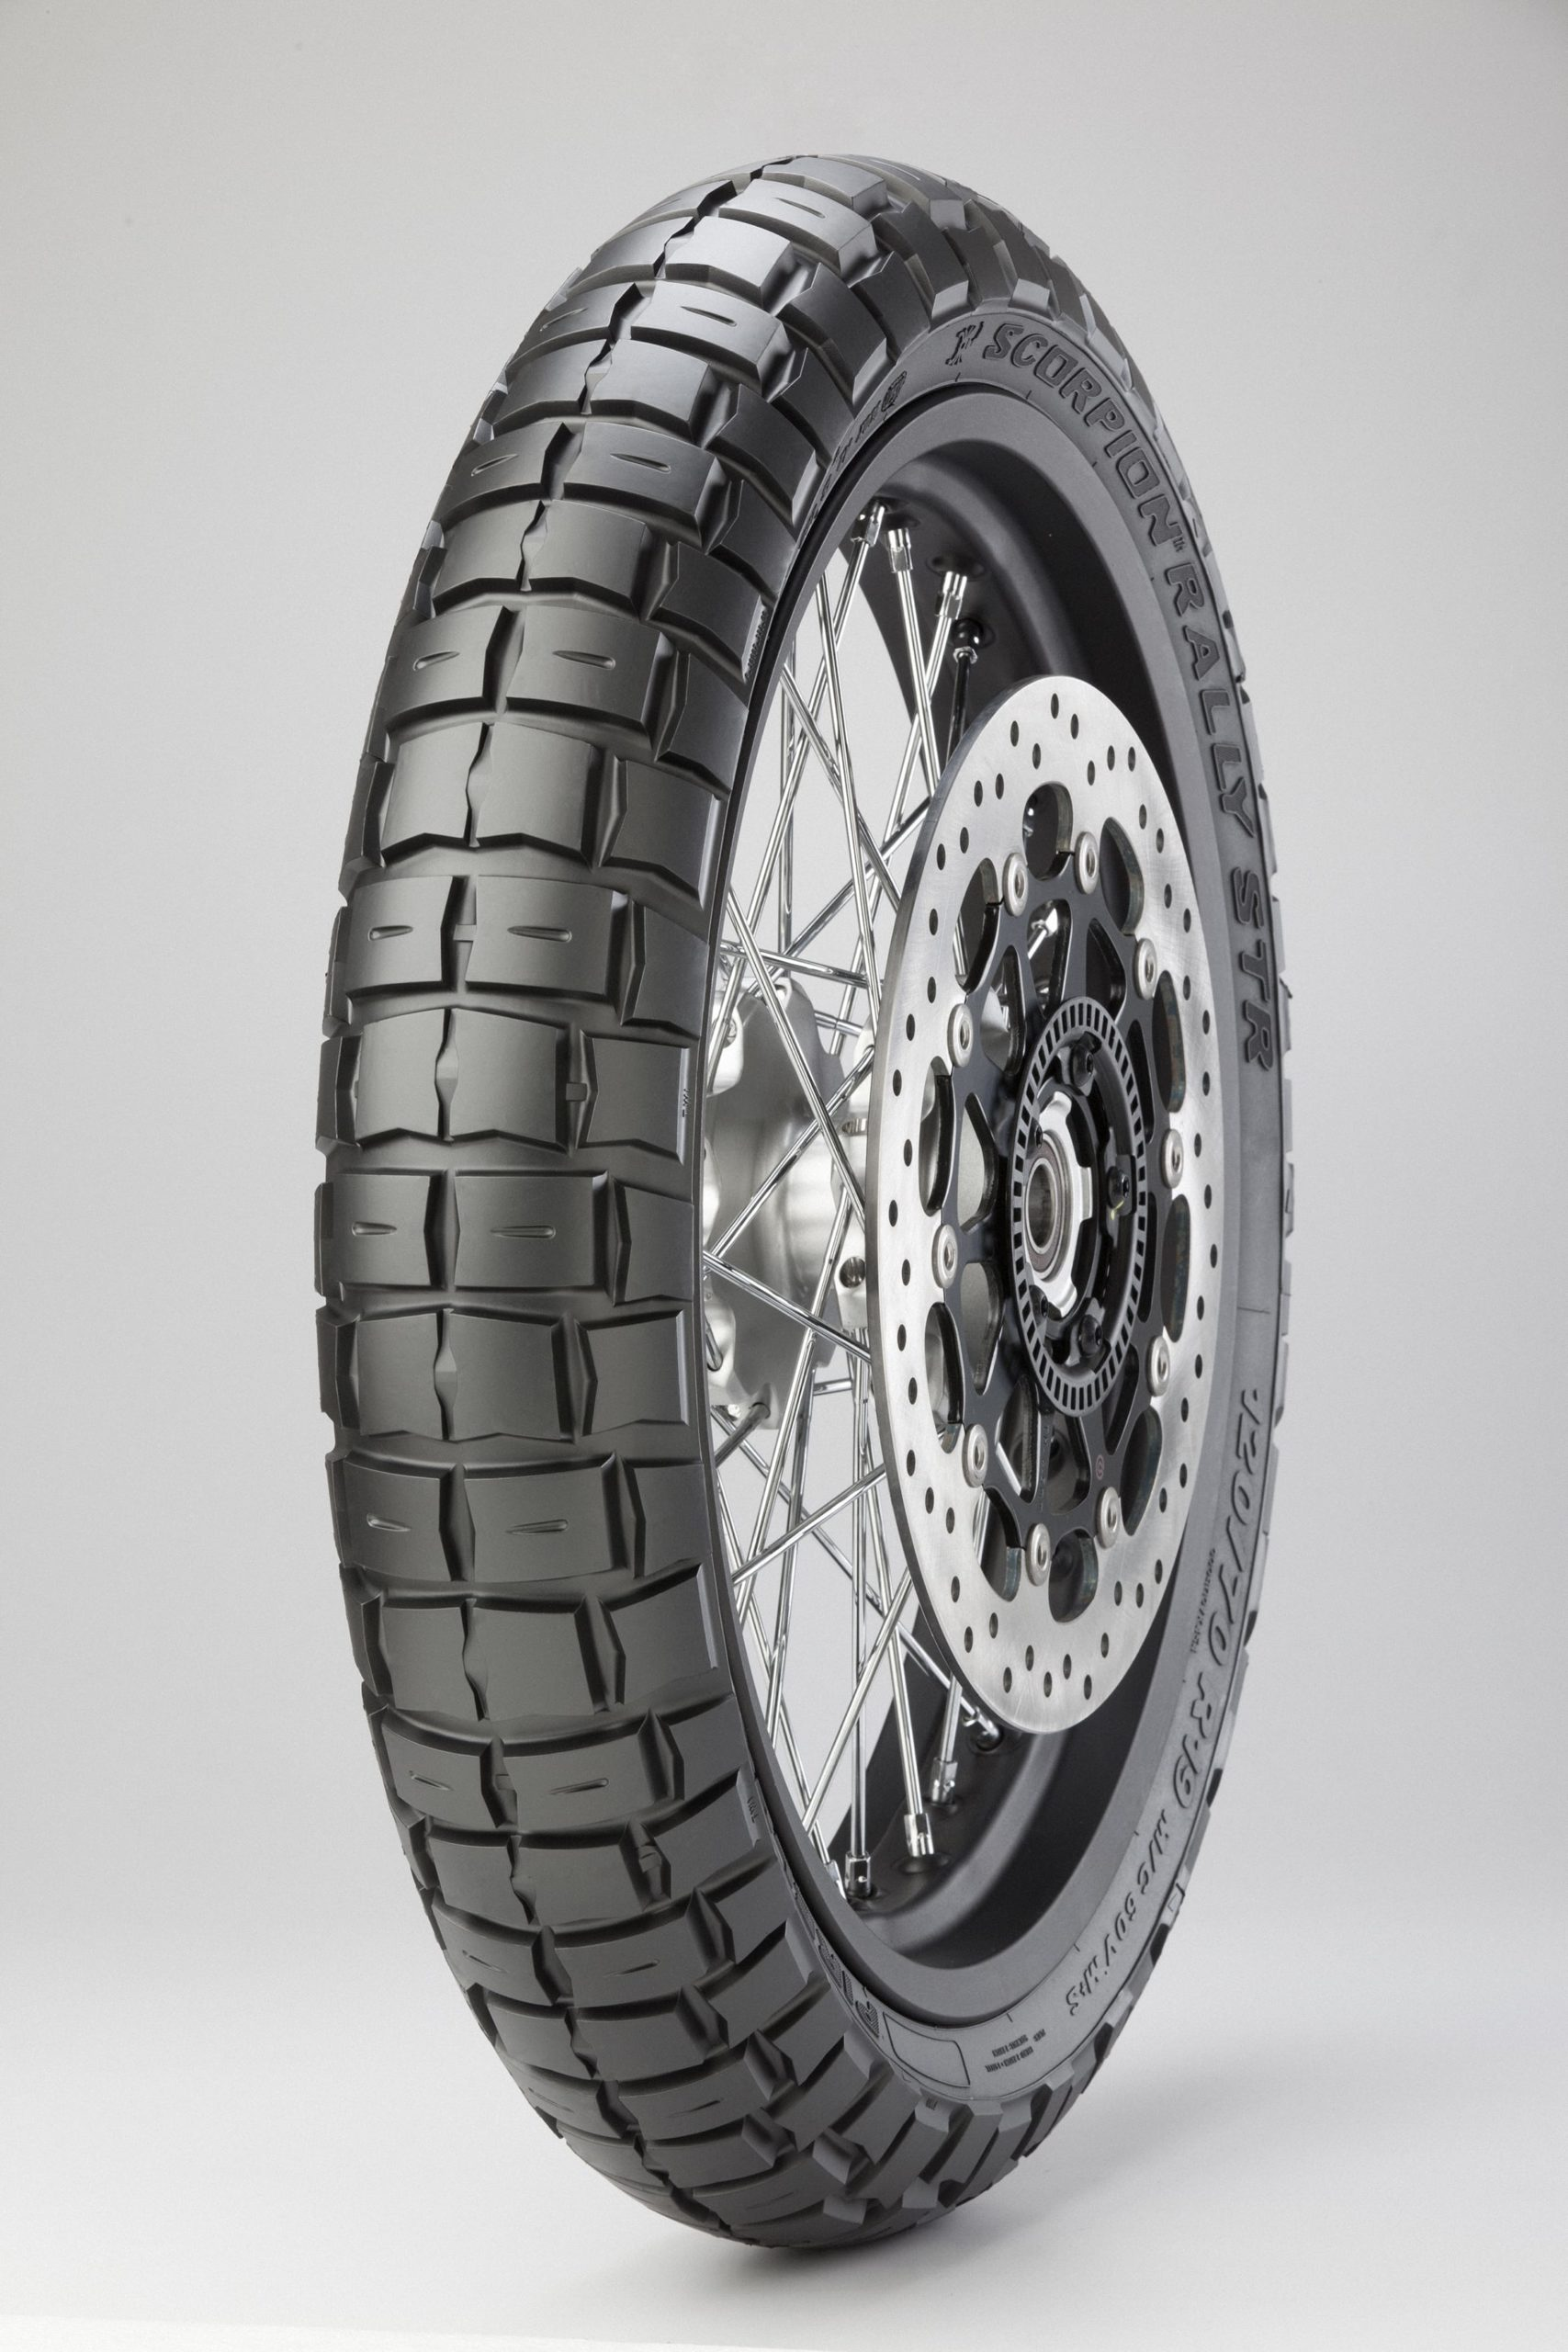 Anvelopa 110/80 R19 SCORPION RALLY STR 68P TT PIRELLI